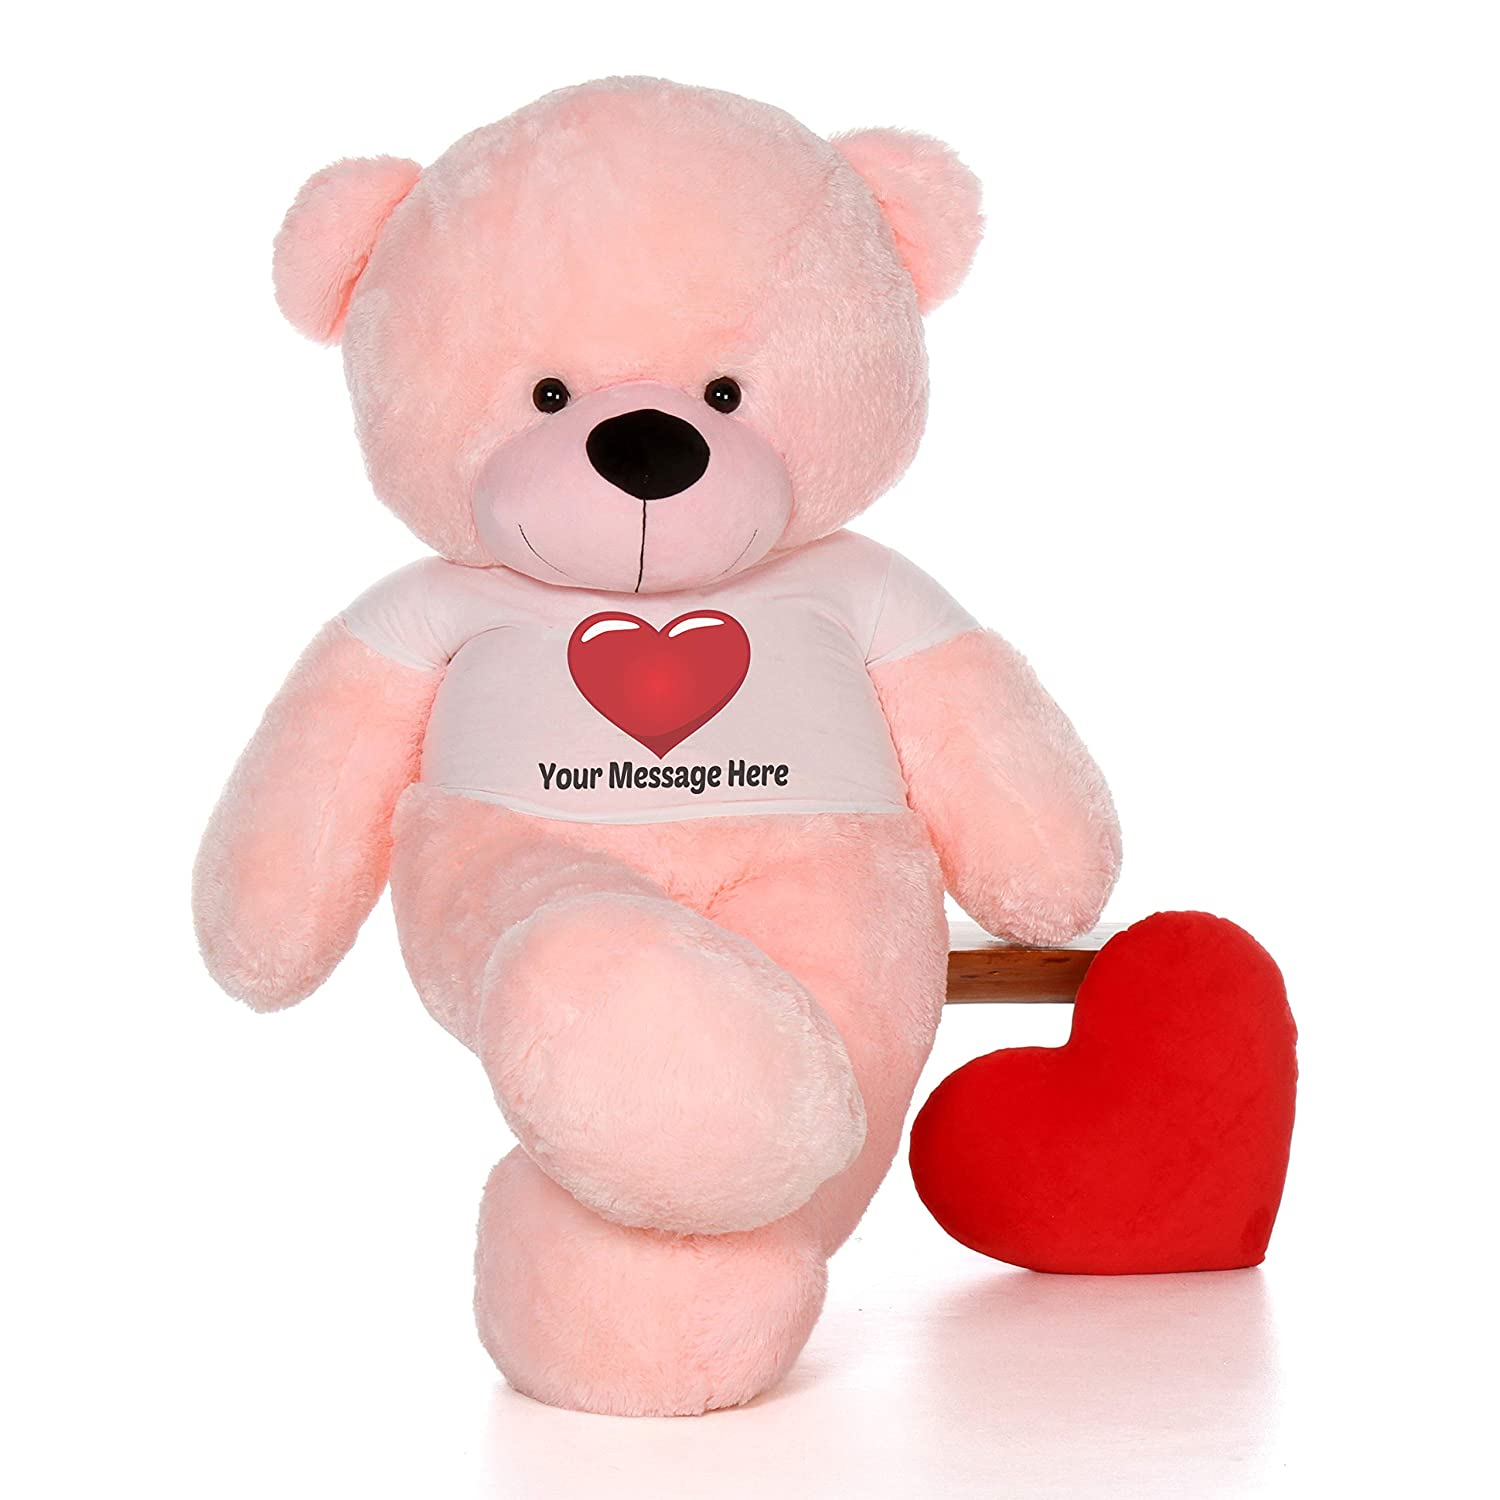 c9c312b47ce8 Amazon.com: Giant Teddy Personalized Life Size 6 Foot Bear Cuddles with Red  Heart T-Shirt (Cotton Candy Pink): Toys & Games